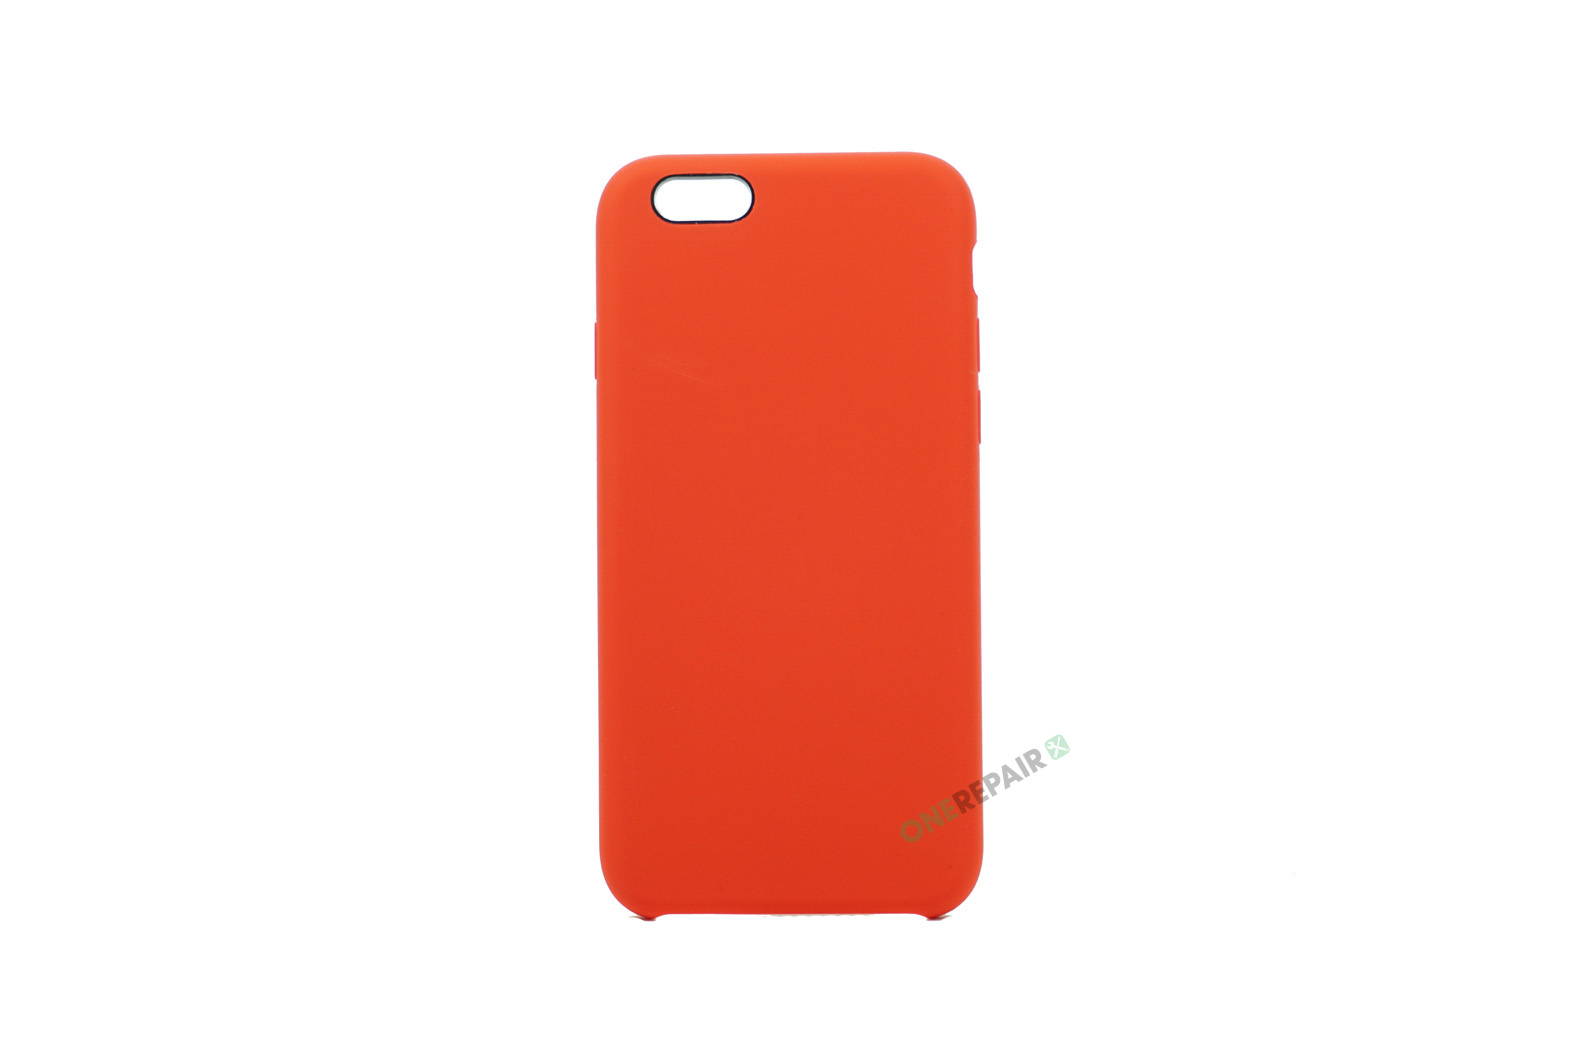 iPhone 6, 6S, A1549, A1586, A1589, A1633, A1688, A1700, A1691, Apple, Bagcover, SIlikone, Cover, Billig, Road, Rød,